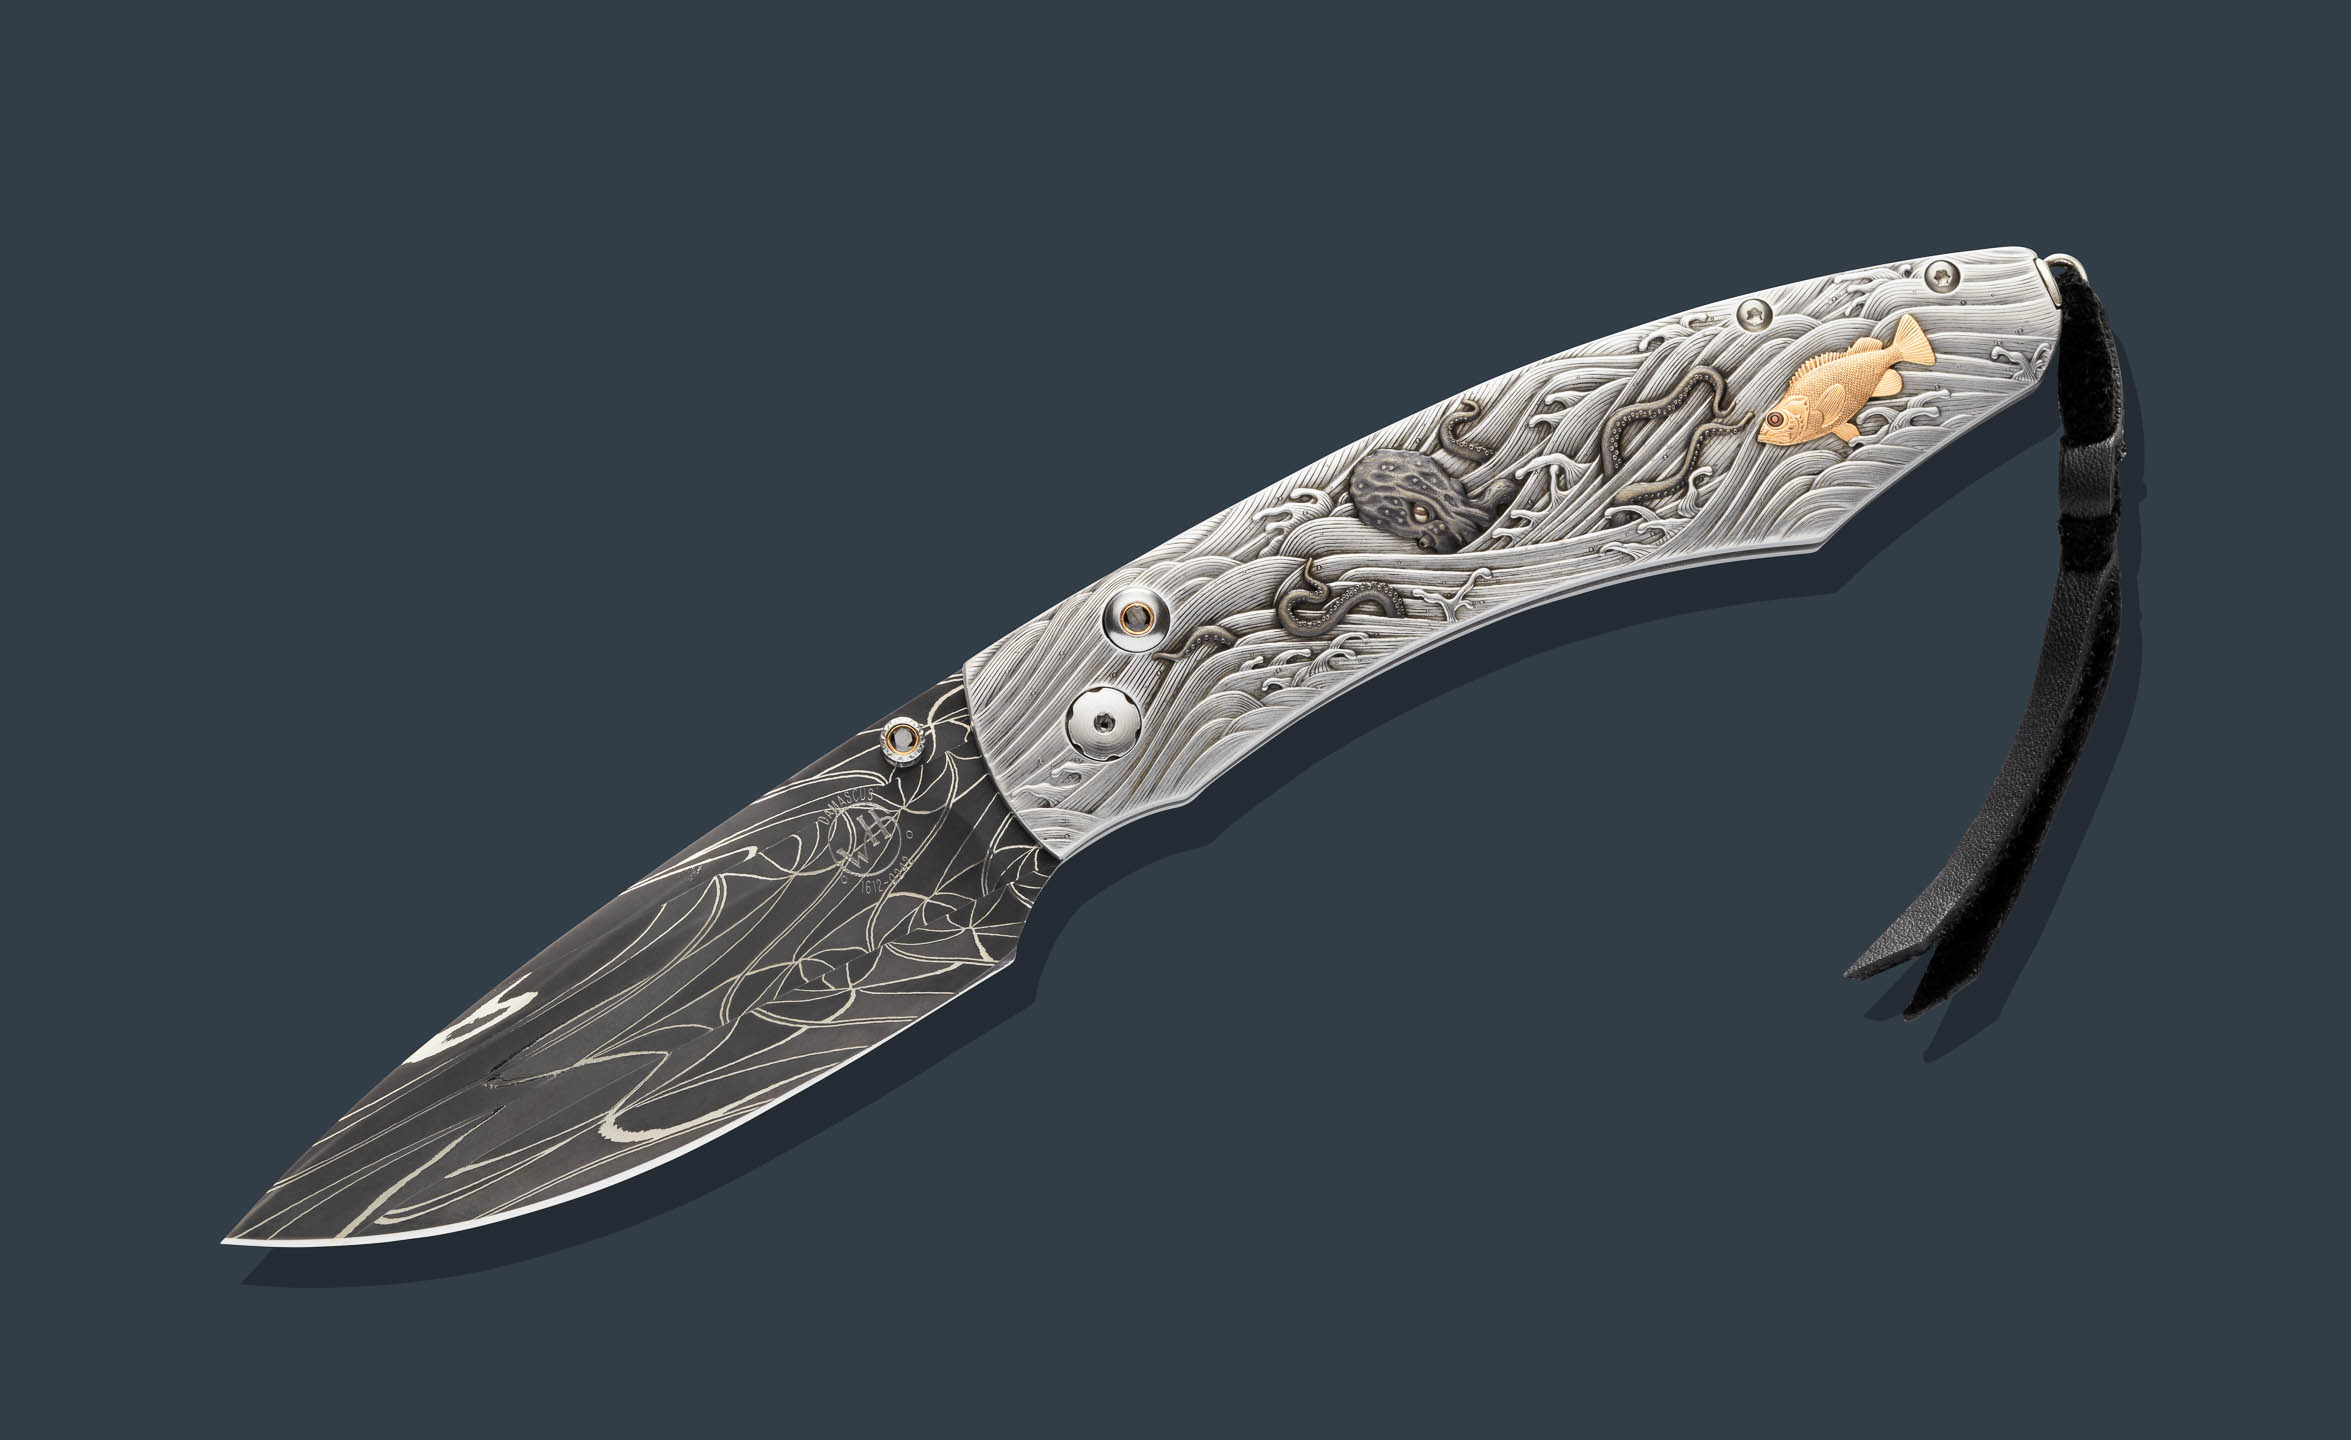 William Henry pocketknife by Steve Temple Photography